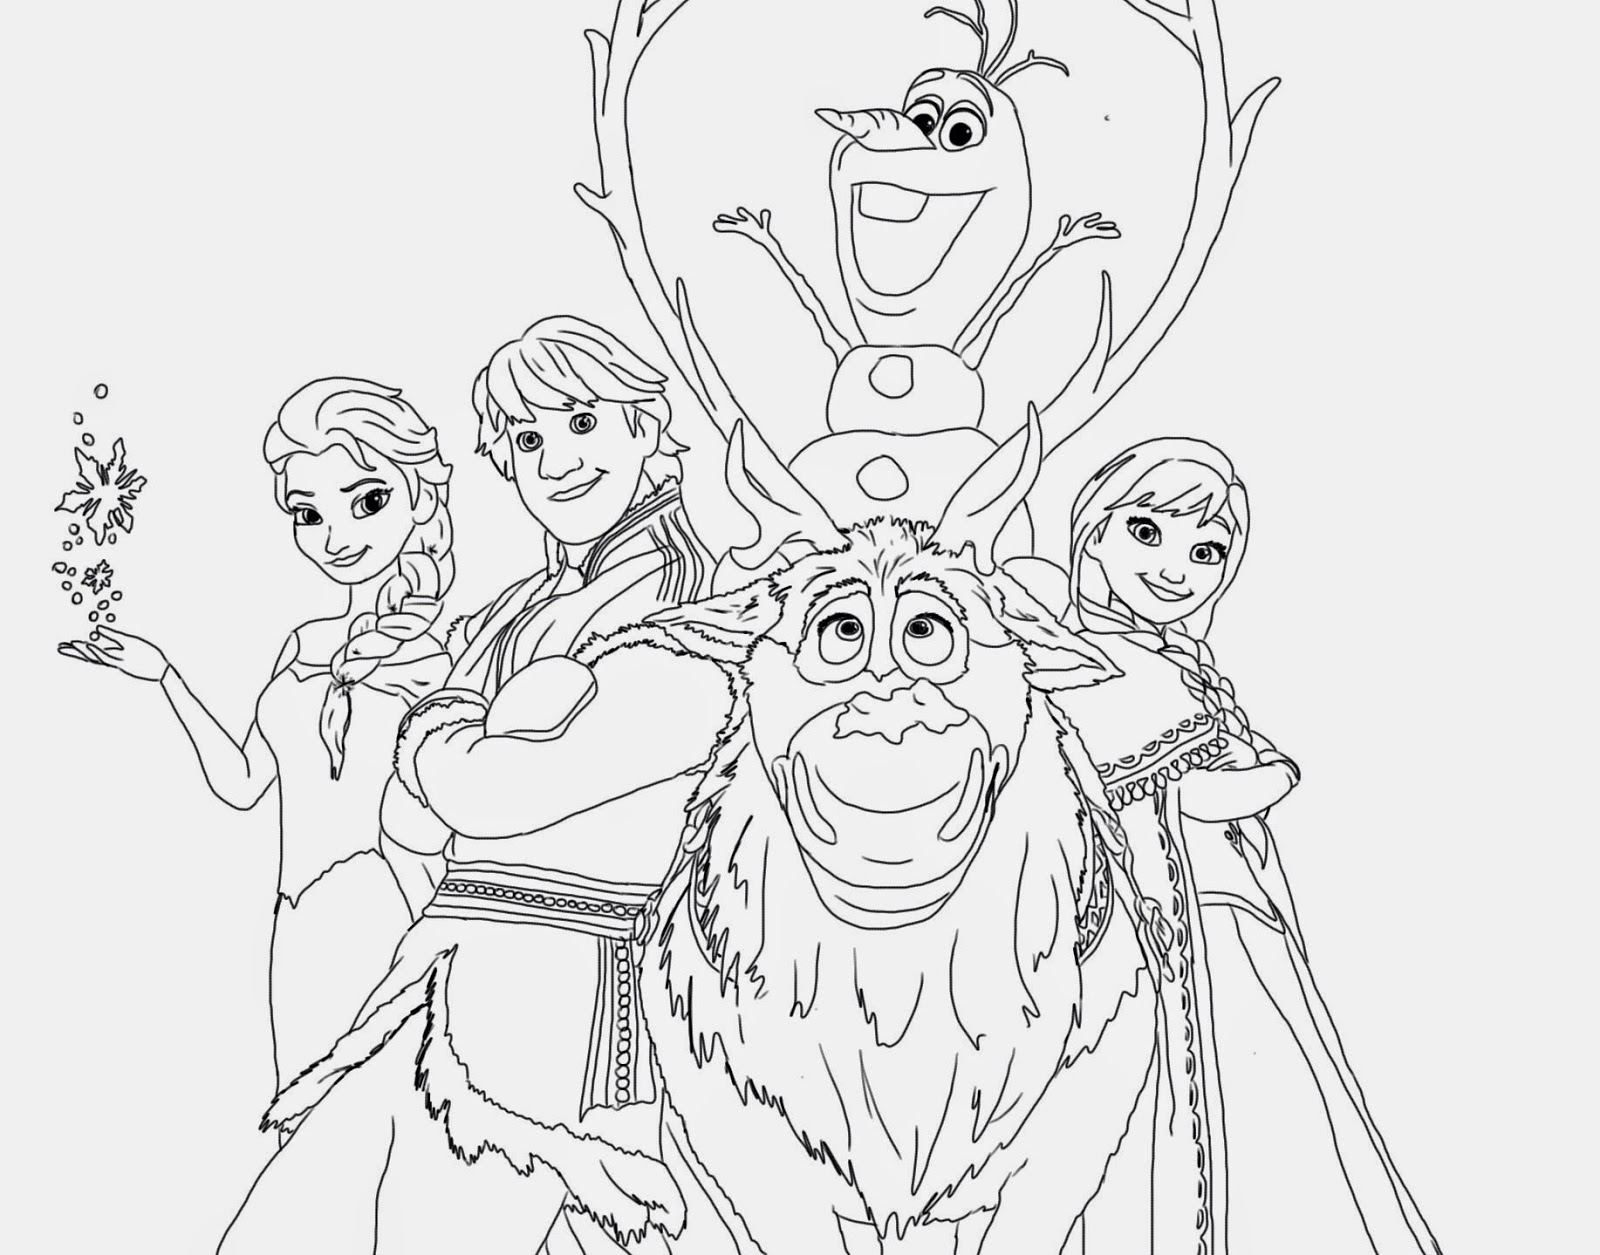 Printable disney coloring books - Disney Coloring Pages That Are Printable Disney Coloring Pages That Are Printable 41